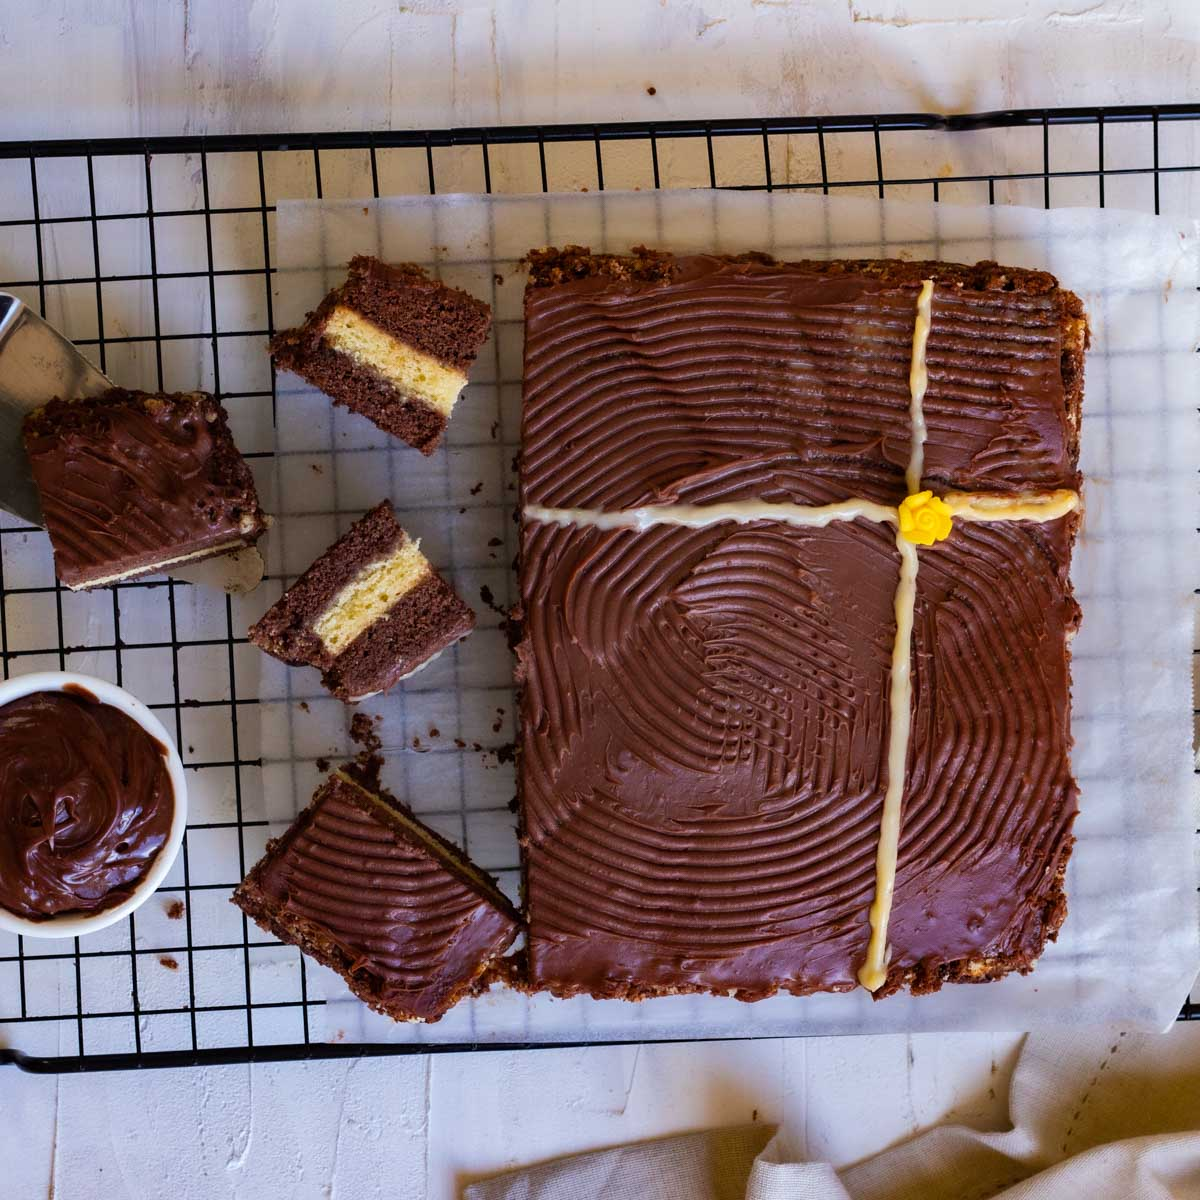 A top down shot of a chocolate vanilla cake. The cake is cut in half, and placed on parchment paper on top of a baking rack. There are 4 cake slices along with a bowl of chocolate ganache placed in front of the cake.